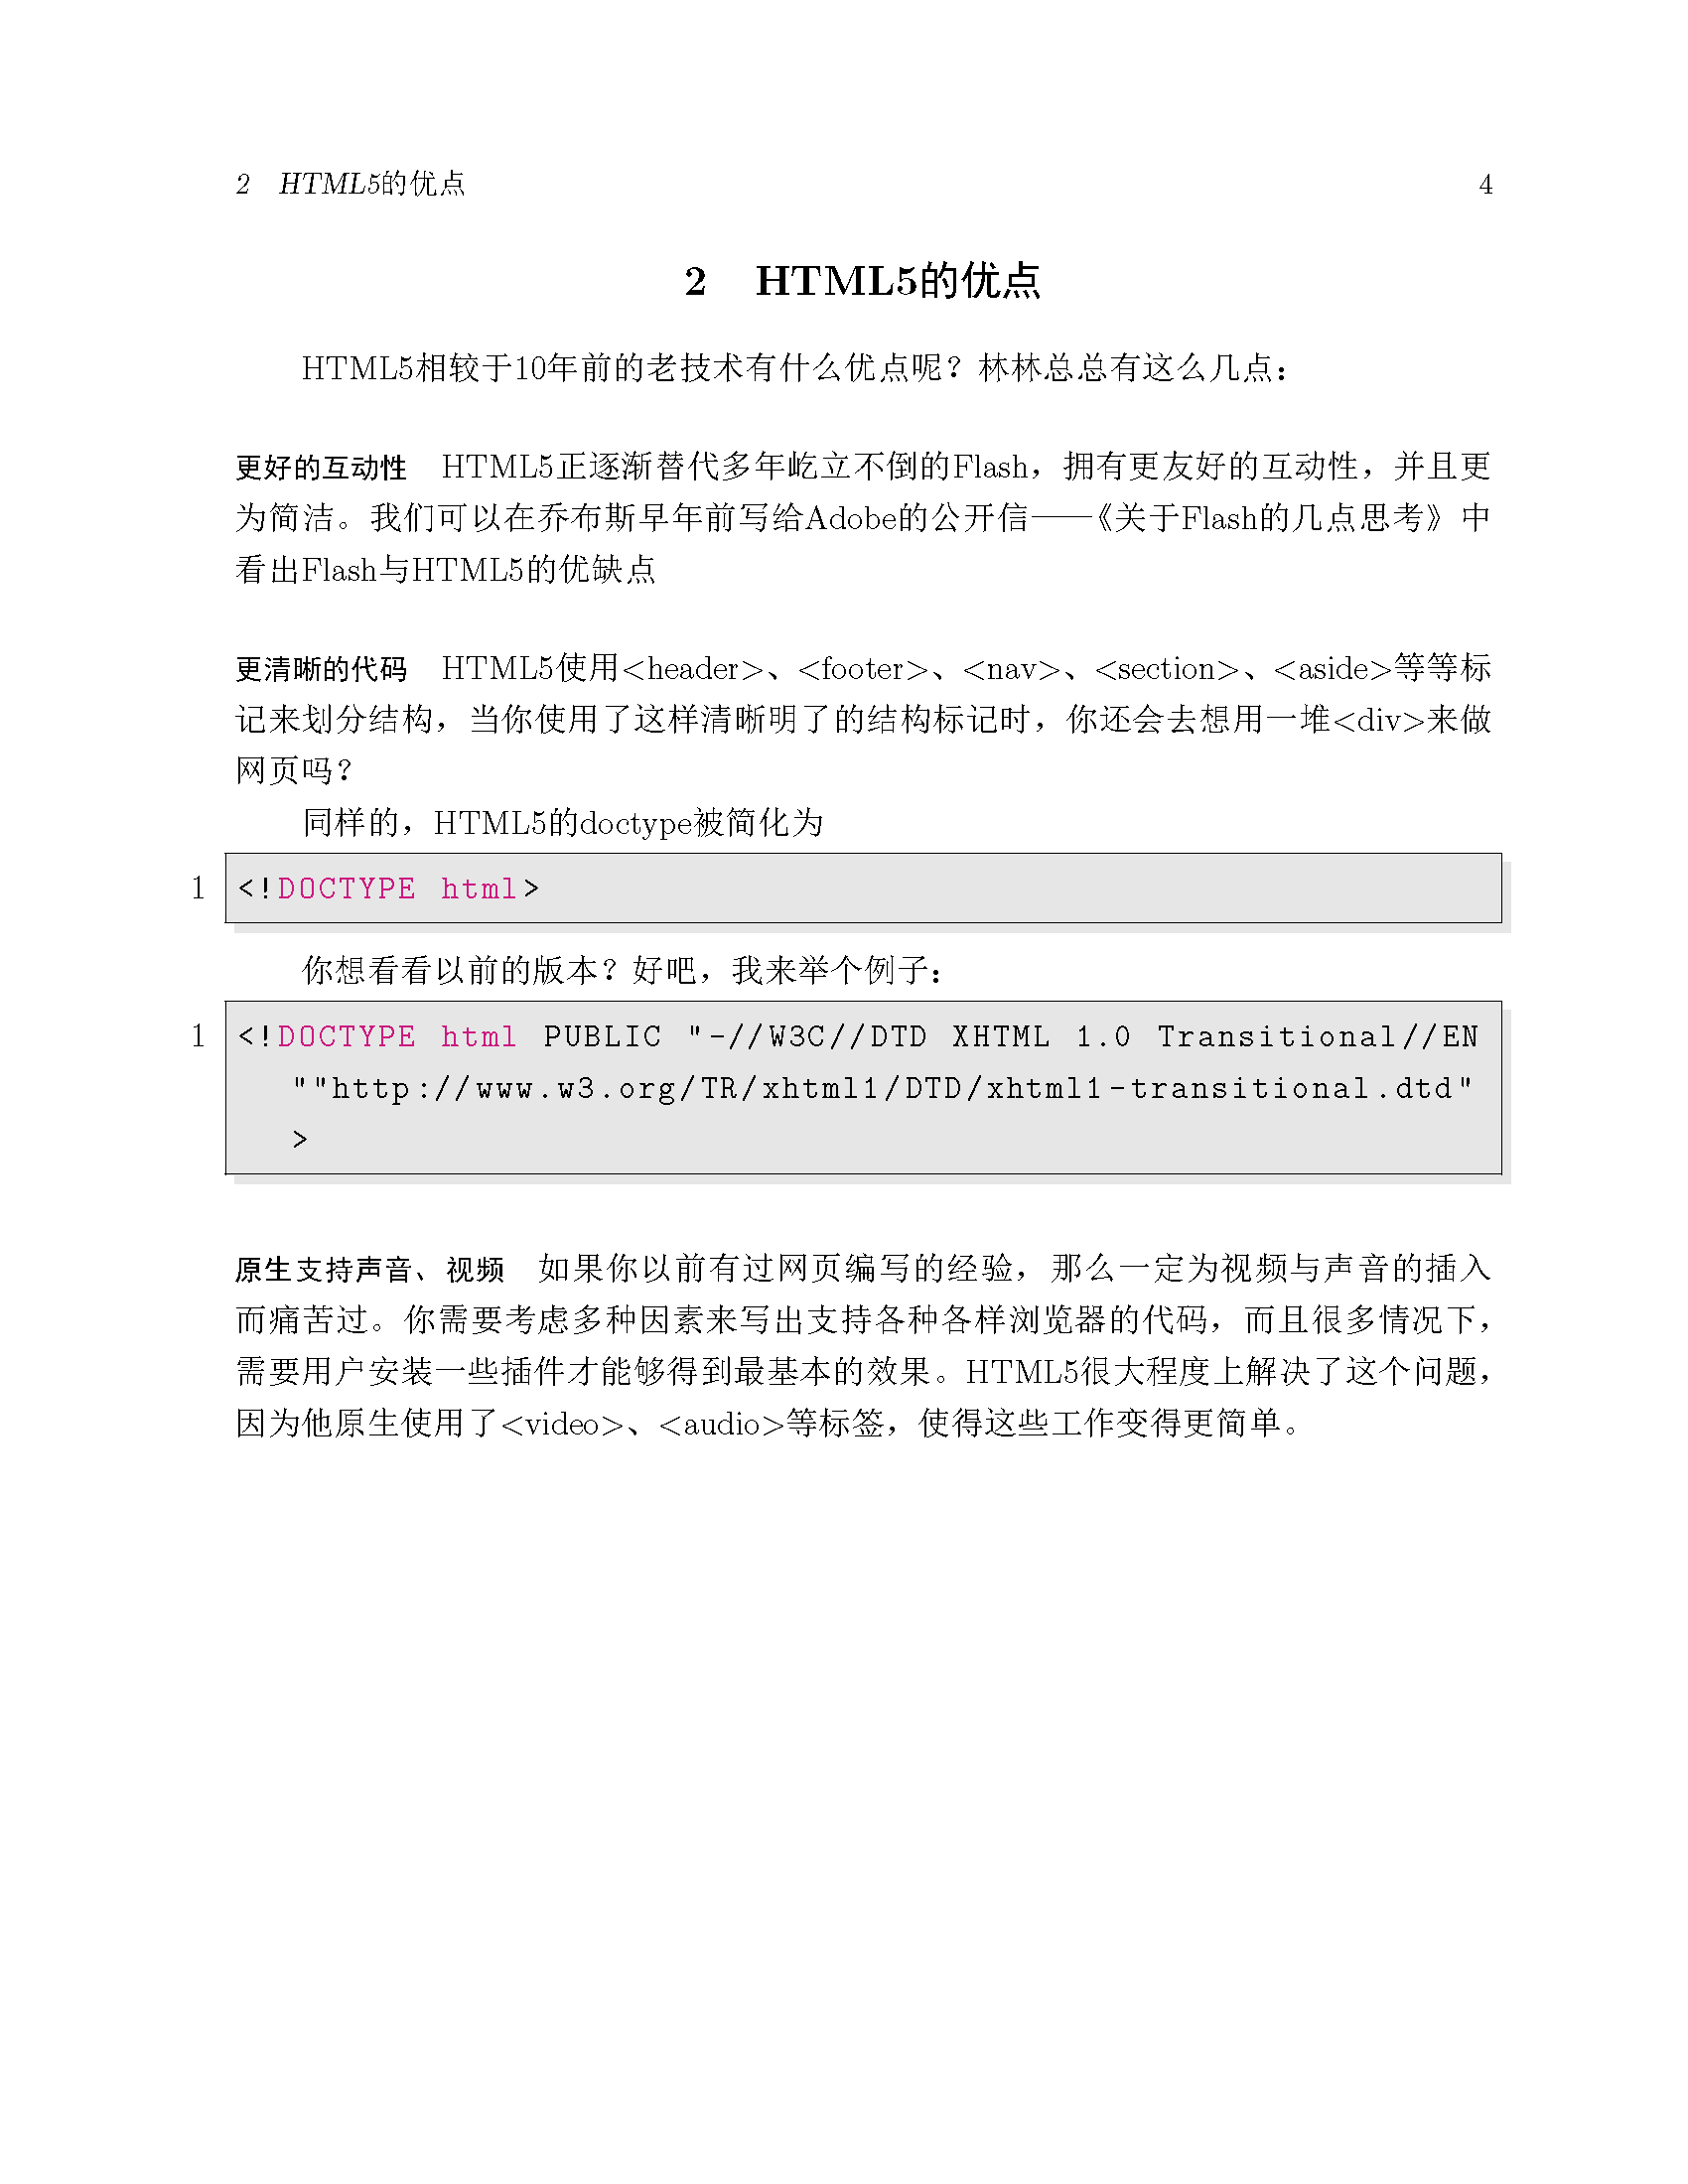 HTML5与CSS3_页面_04.png